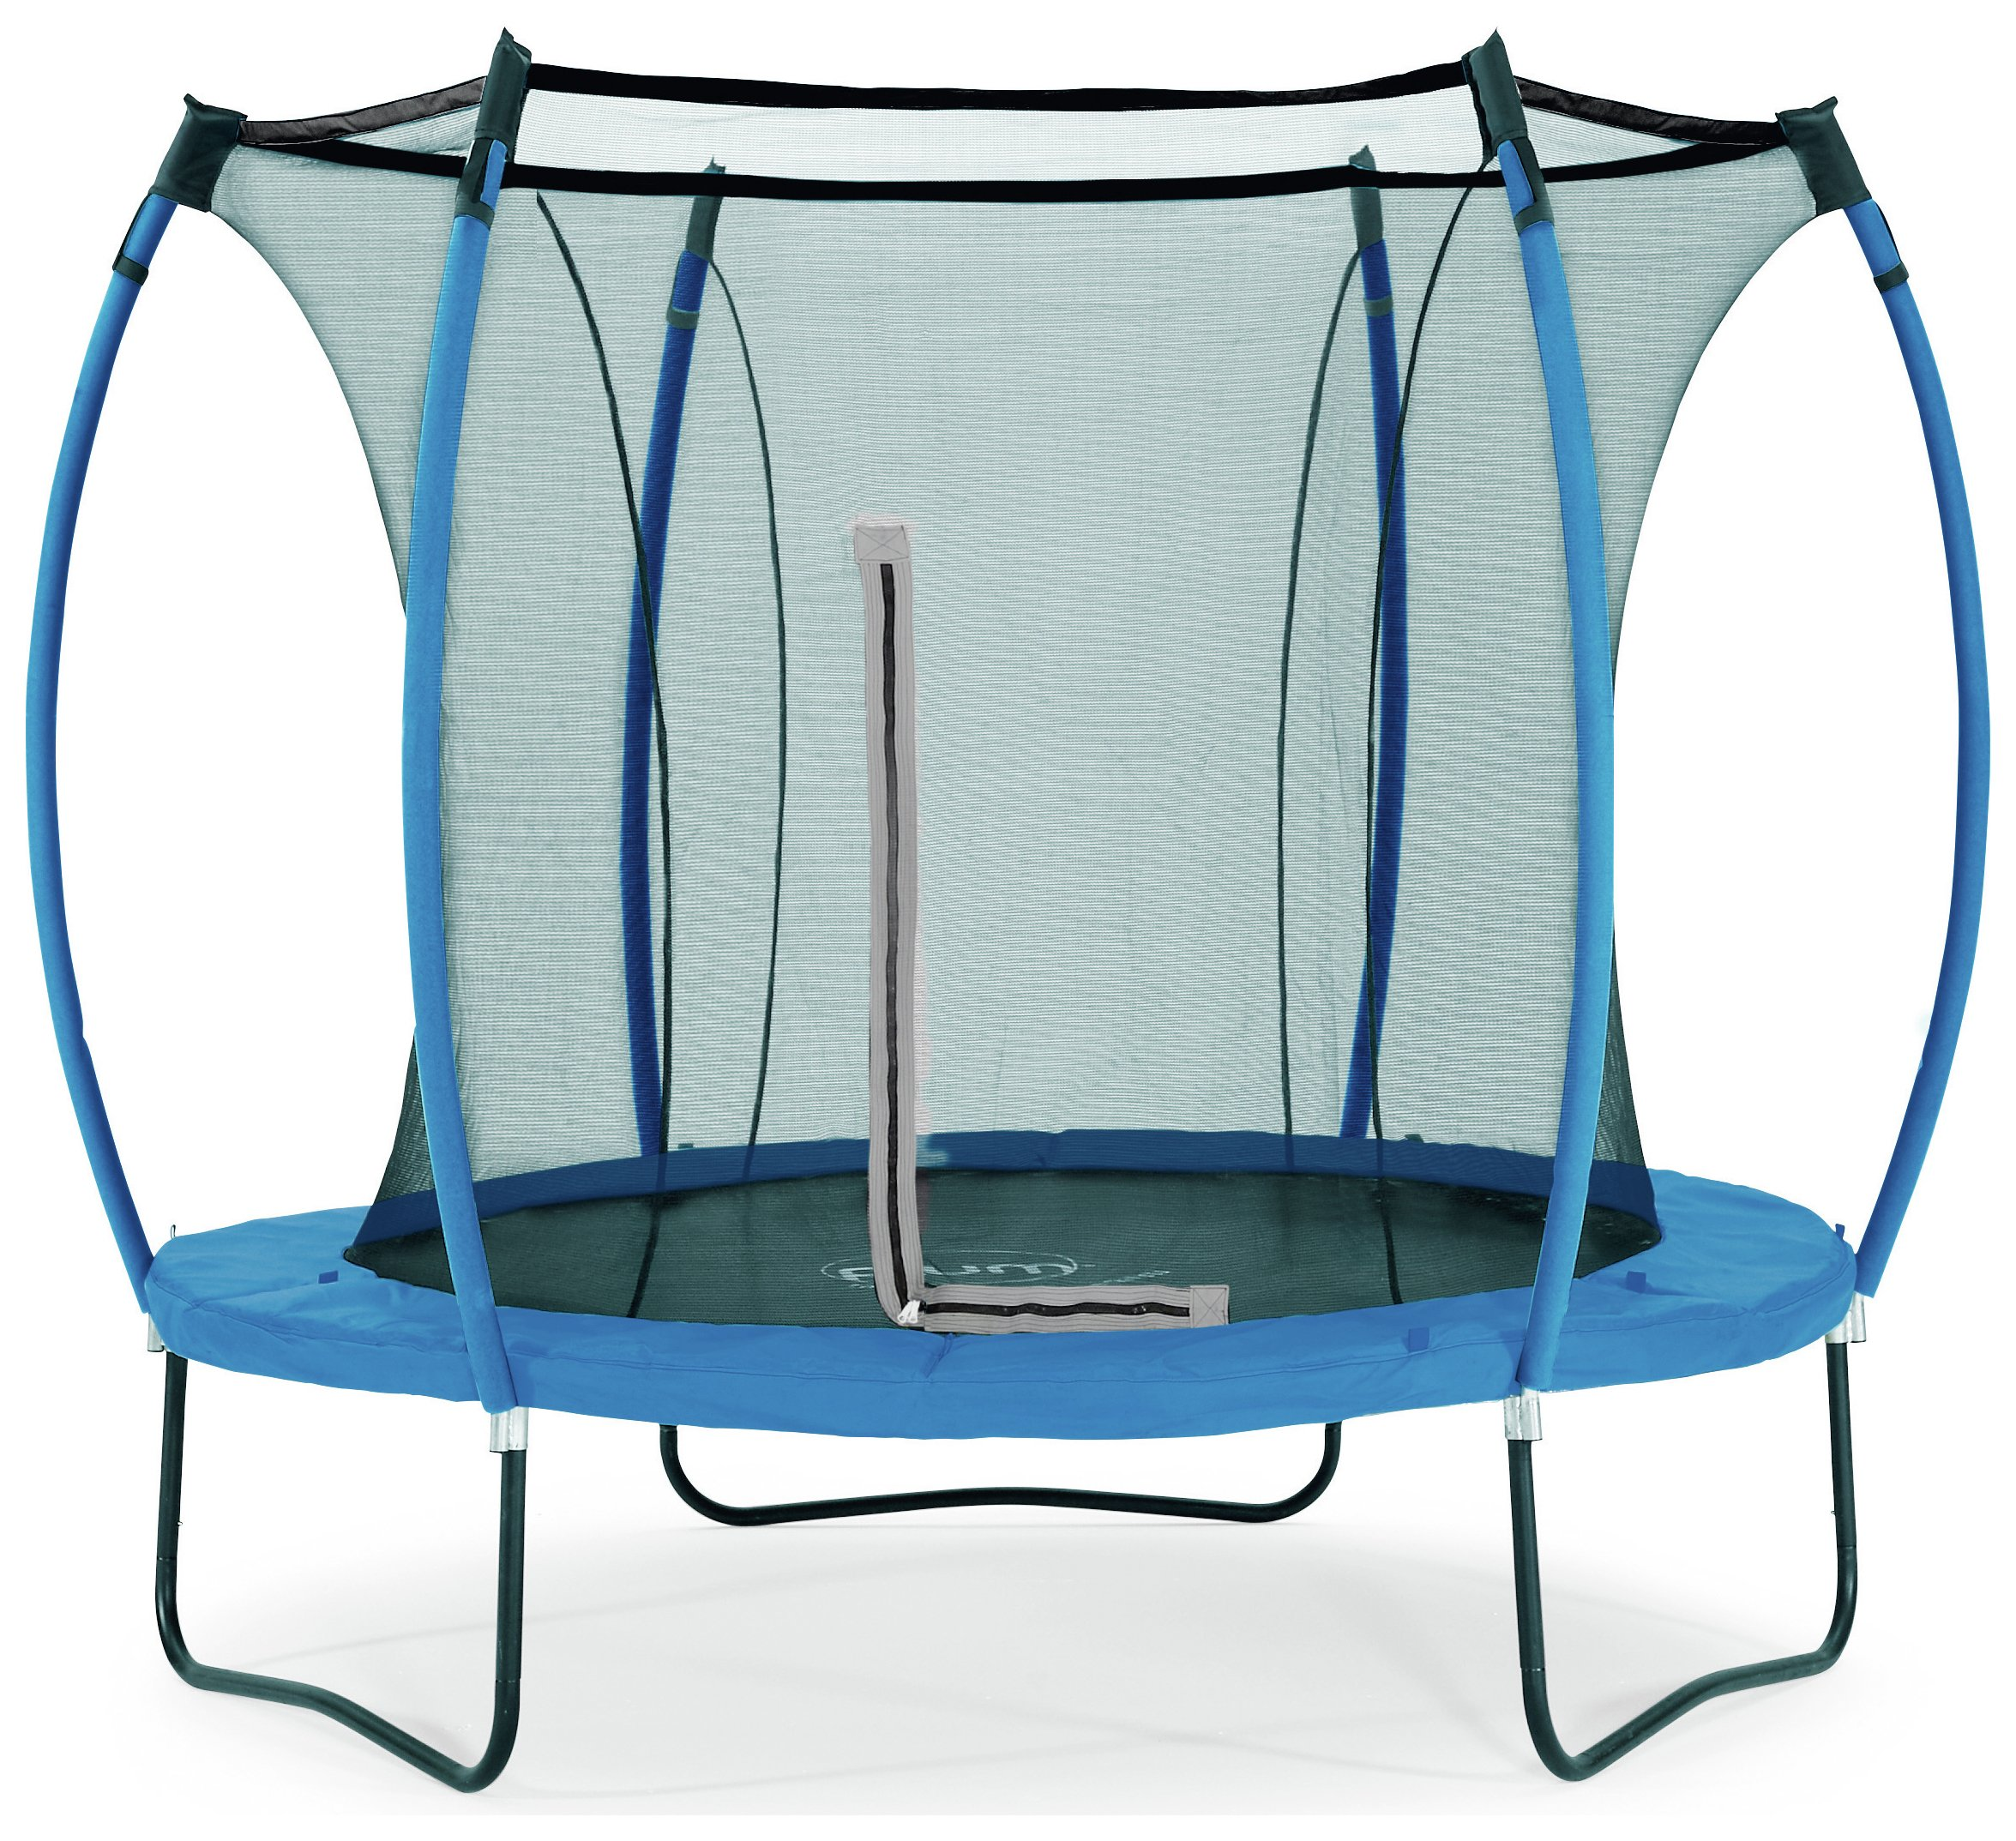 plum 8ft trampoline assembly instructions